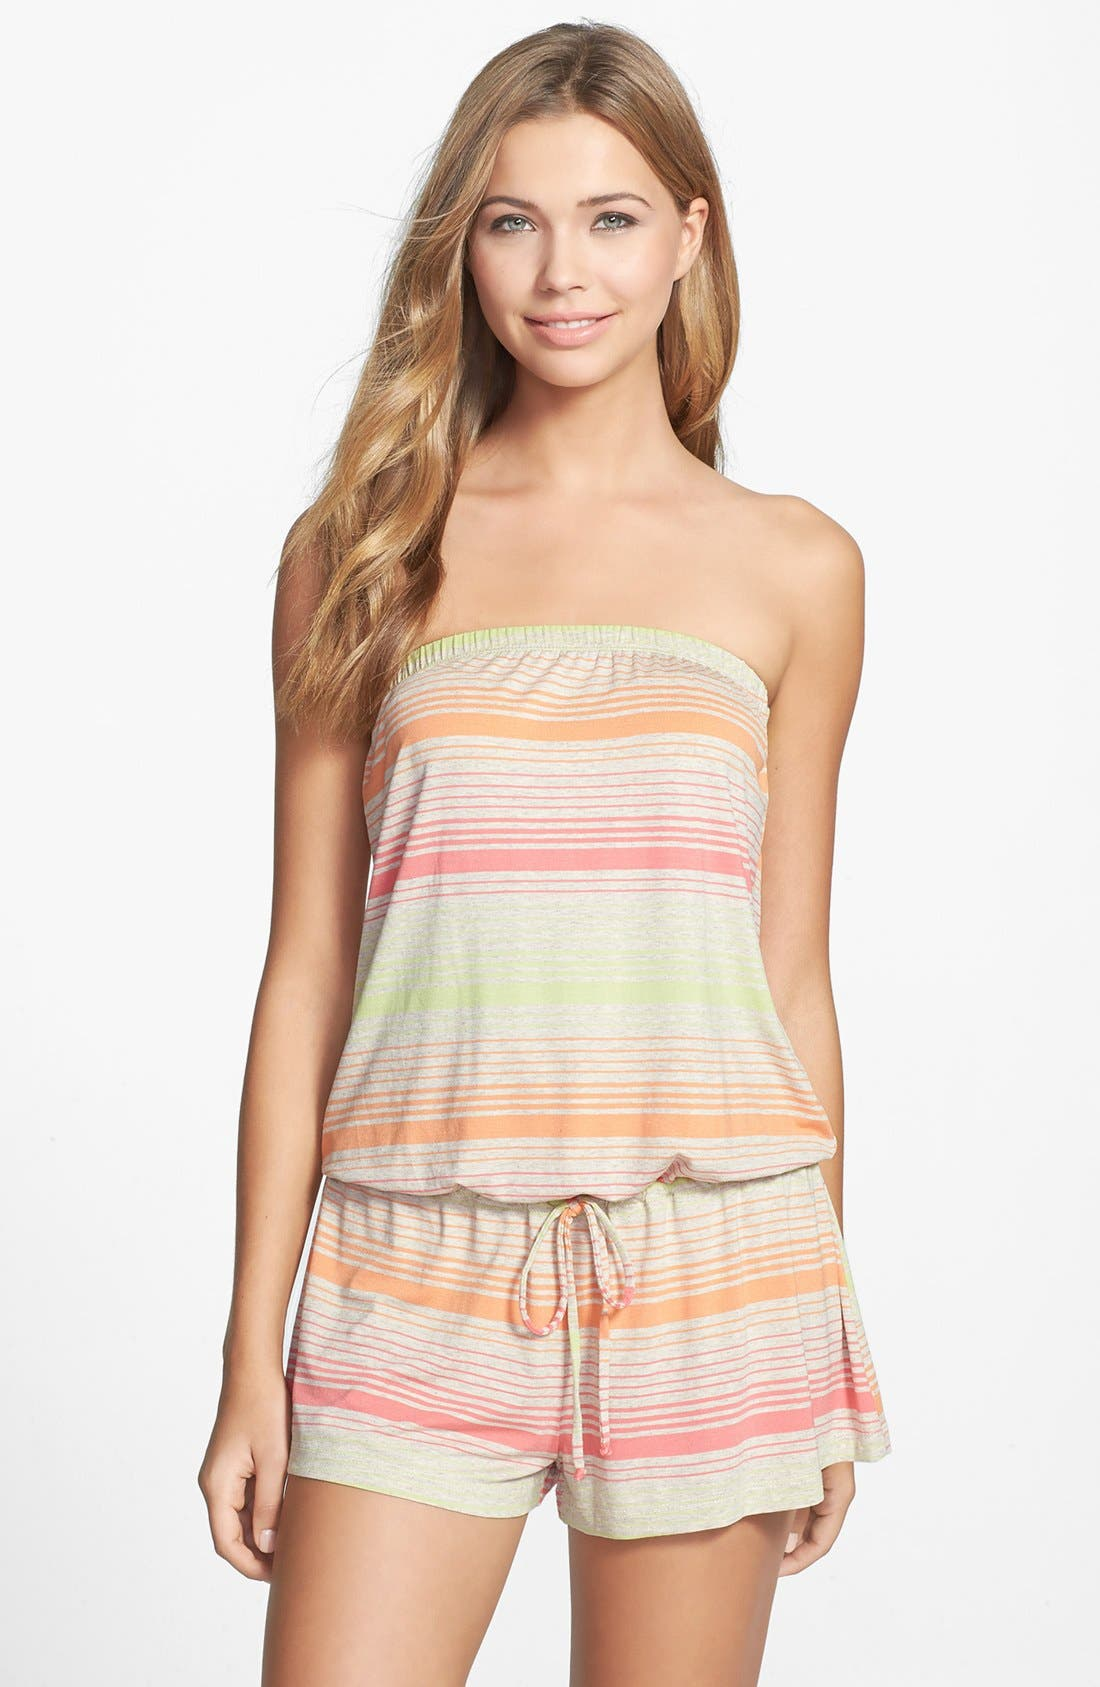 Main Image - Lucky Brand Swimwear 'Neutral Territory' Strapless Cover-Up Romper